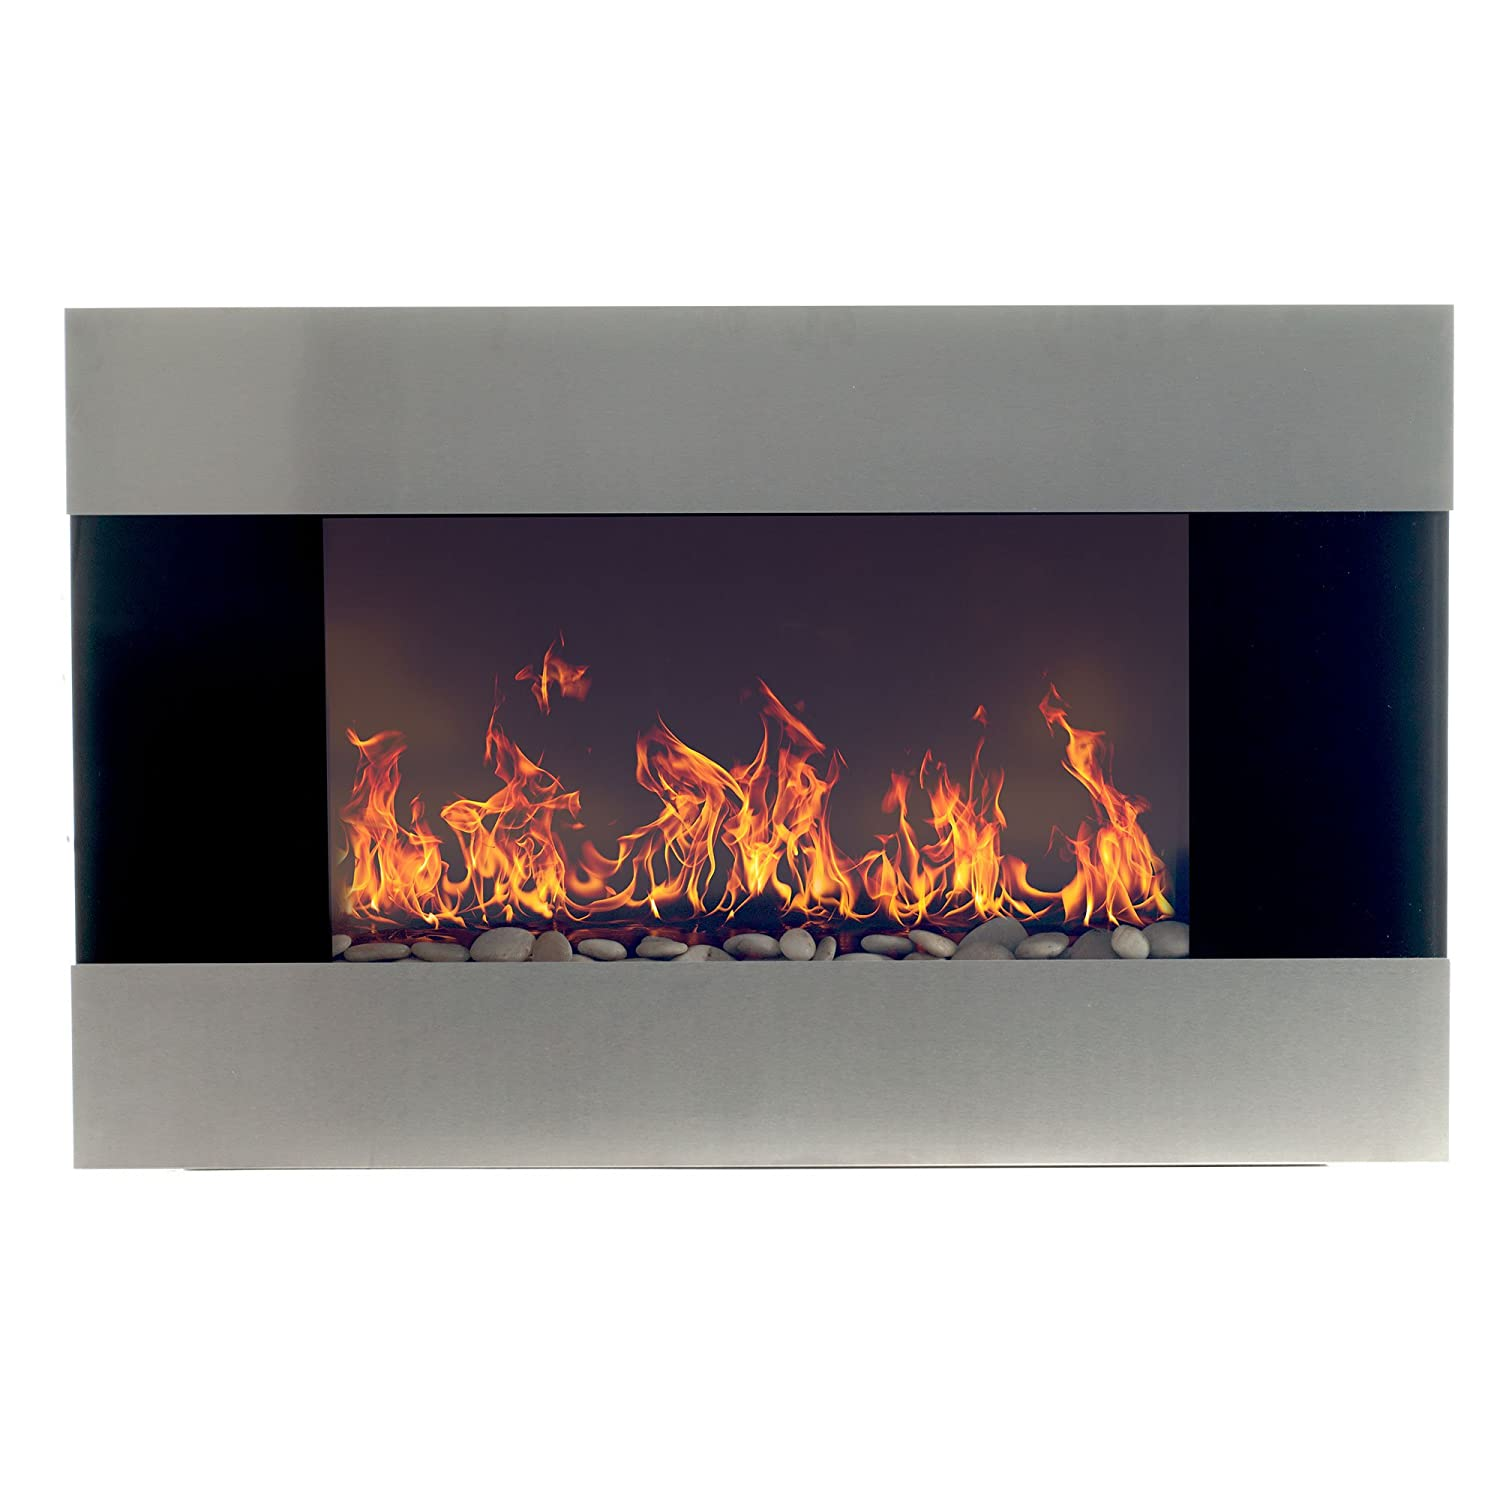 sales fireplace sale near hiberpod me for electric on